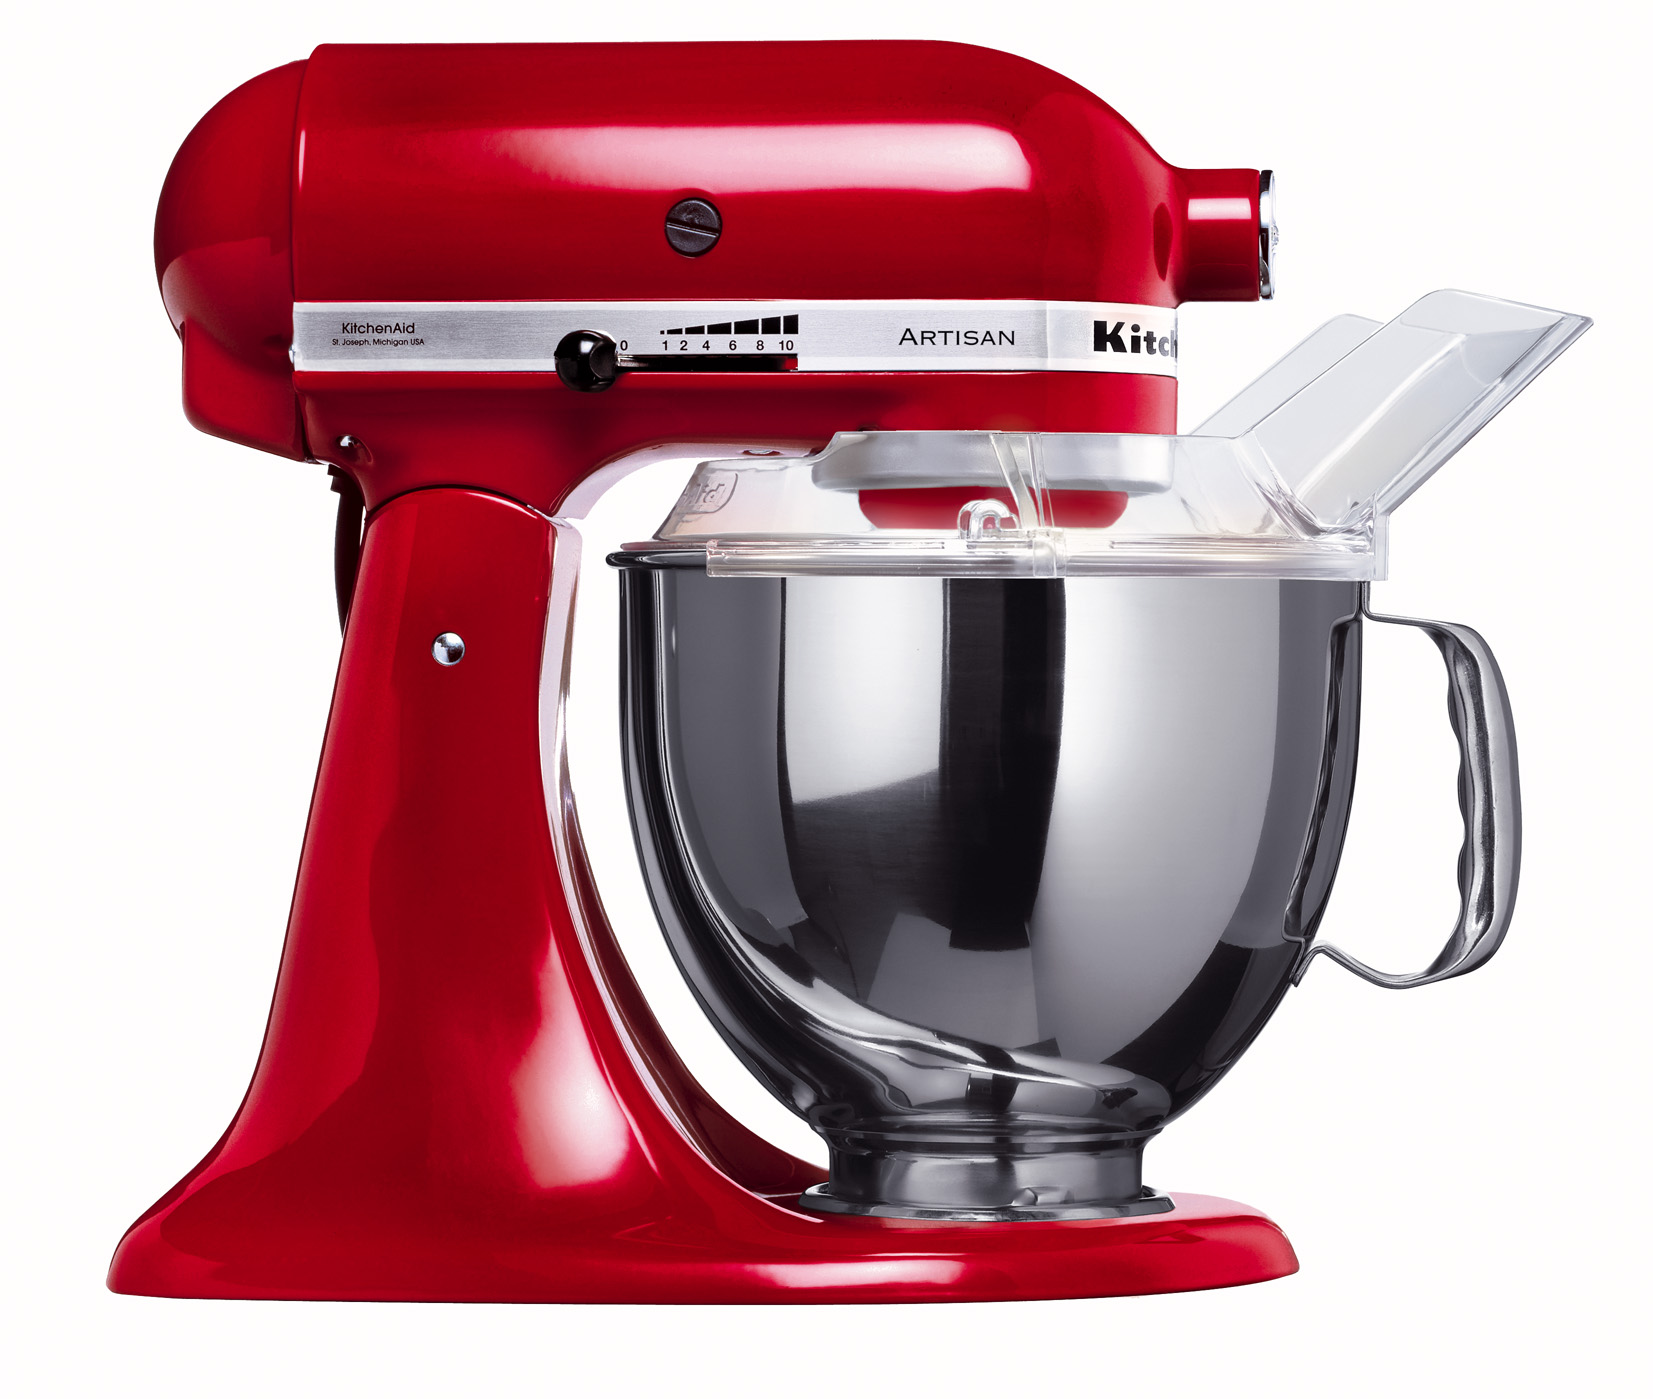 Covers for kitchenaid stand mixers photo - 1